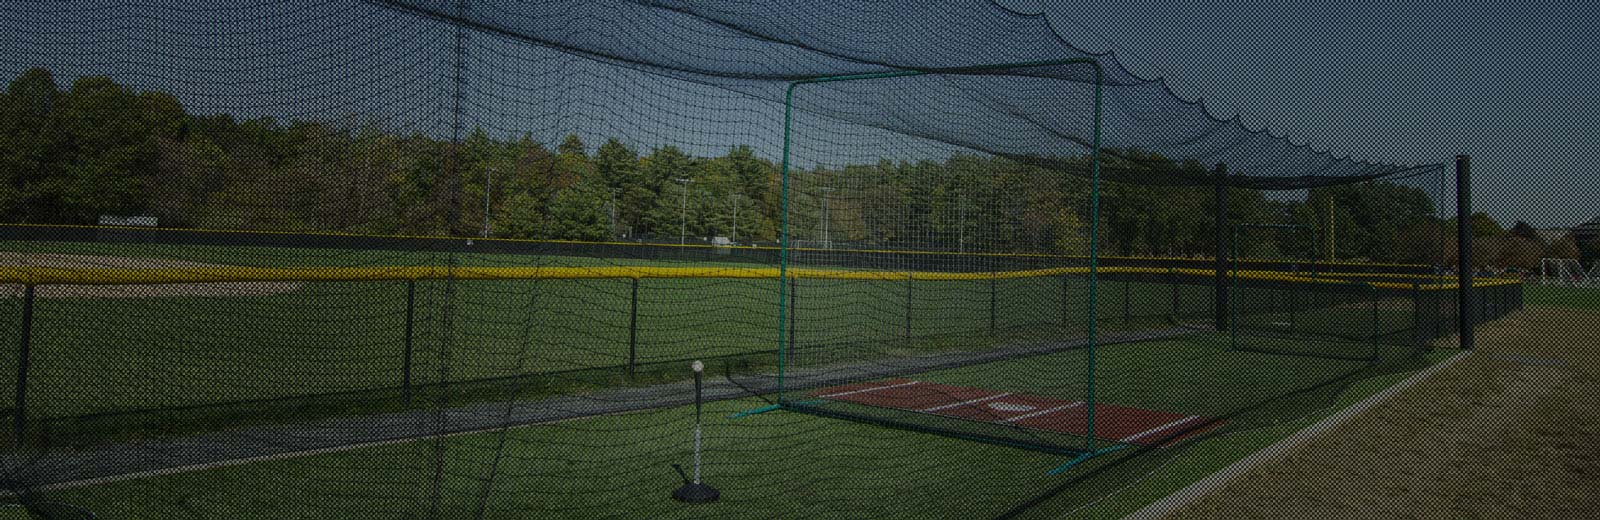 Outdoor Batting Cages for Sale